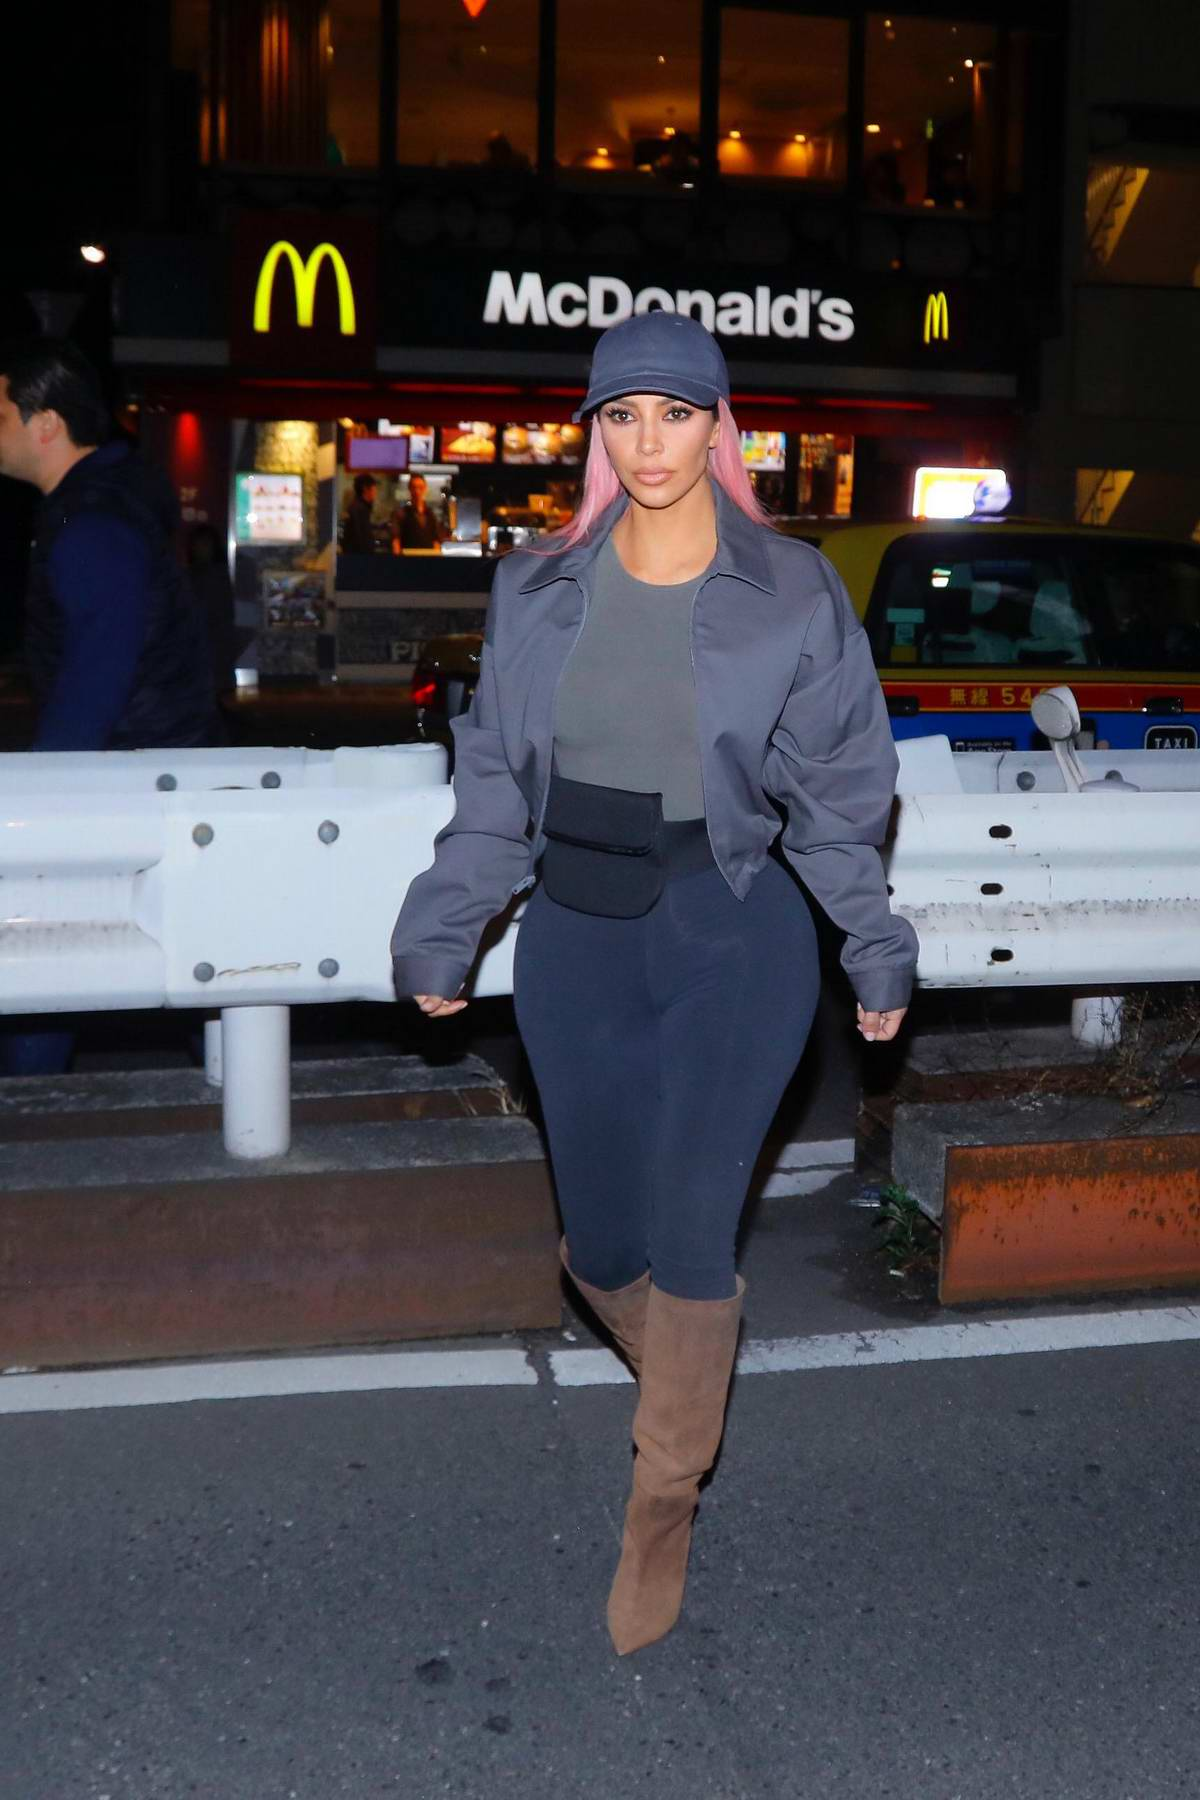 ba37c038a5acc Kim Kardashian grabs some french fries at McDonald s in Tokyo